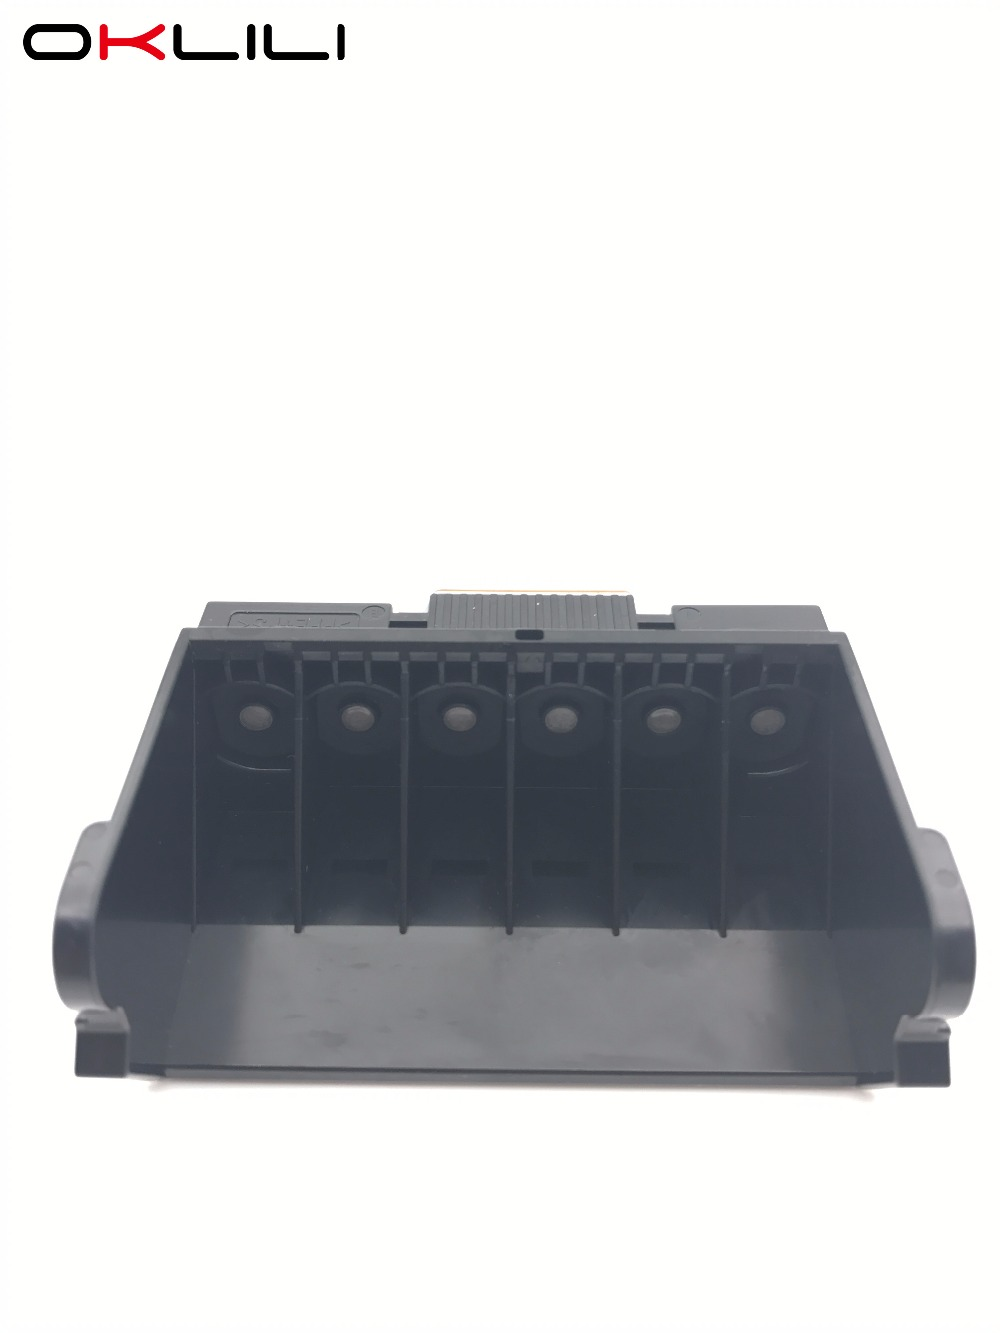 OKLILI ORIGINAL QY6-0063 QY6-0063-000 Printhead Print Head Printer Head for Canon iP6600D iP6700D iP6600 iP6700 genuine brand new qy6 0070 printhead print head for canon mp510 mp520 mx700 ip3300 ip3500 printer